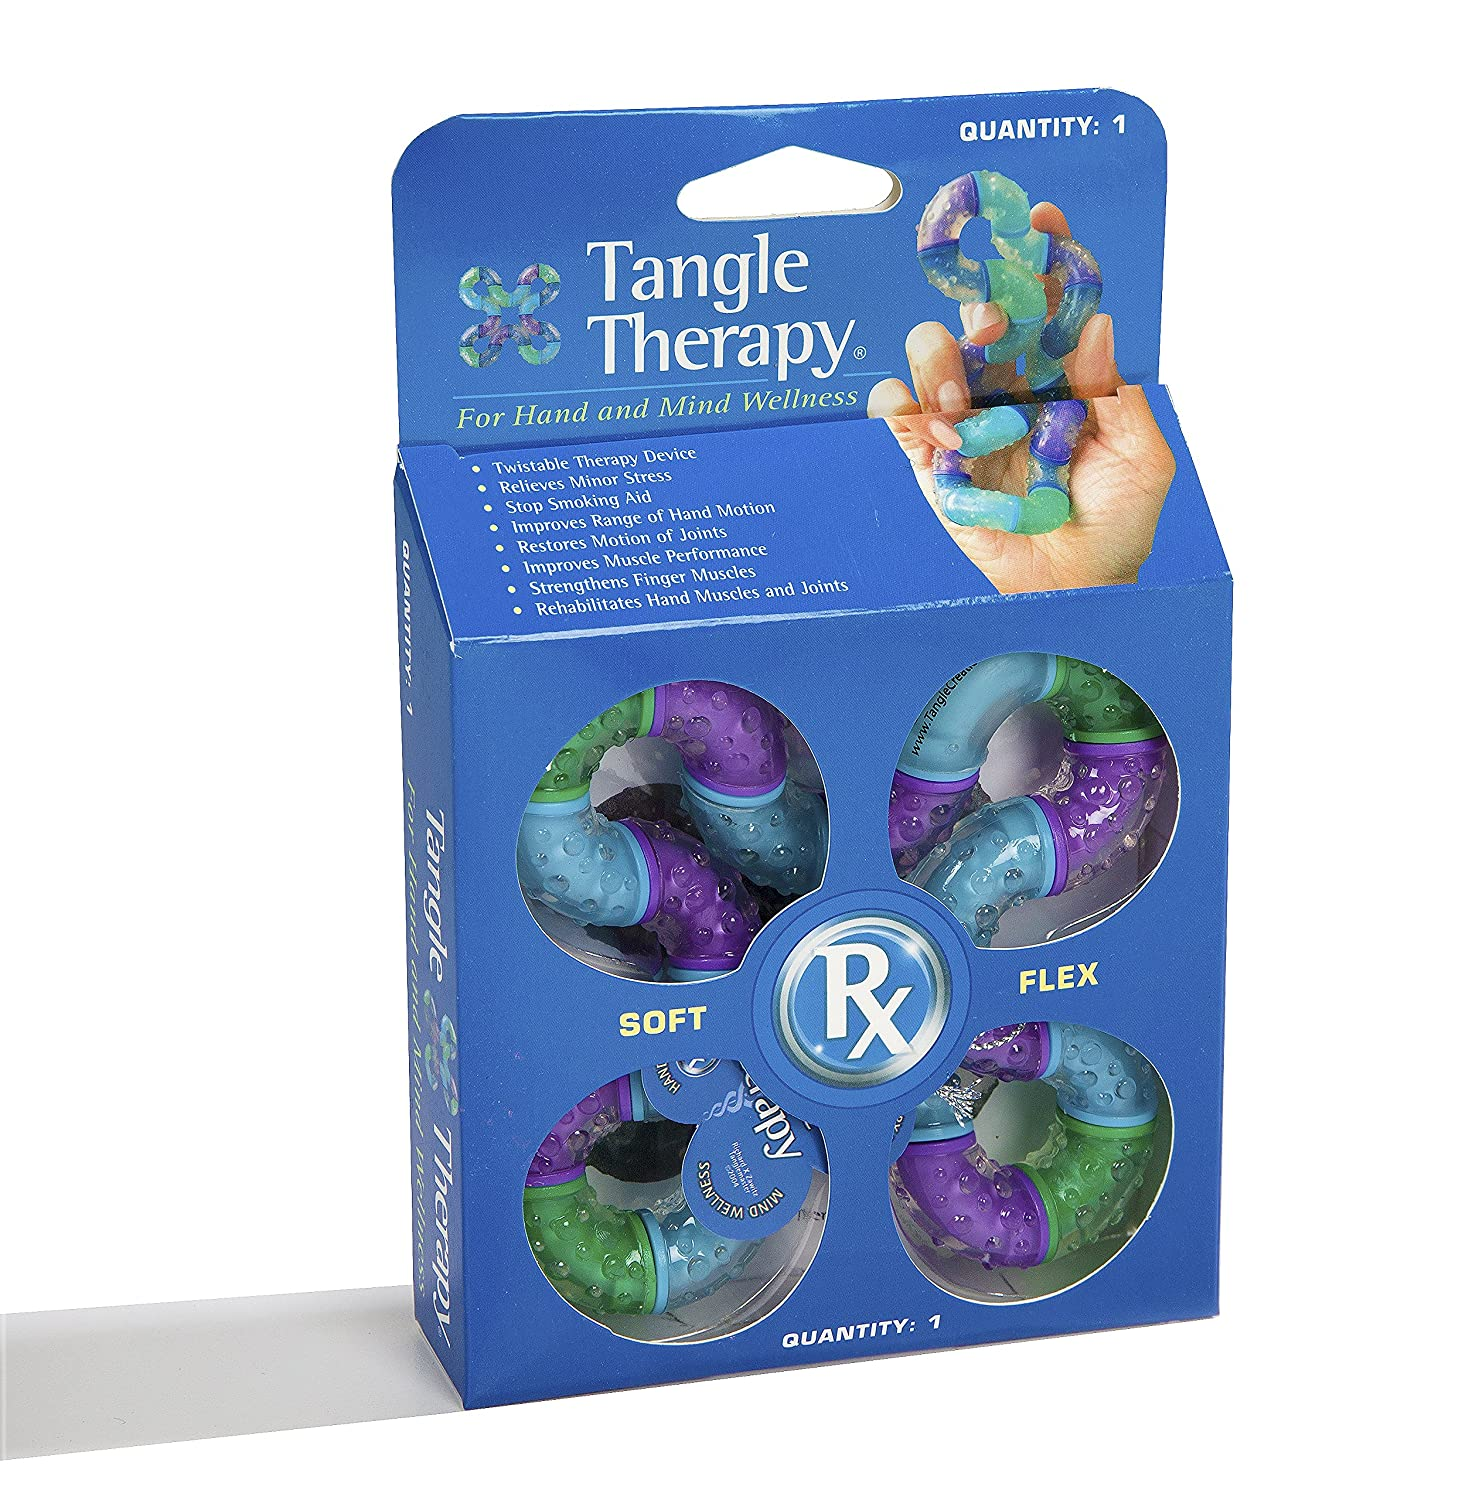 Amazon Tangle Therapy for Hand and Mind Wellness Toys & Games